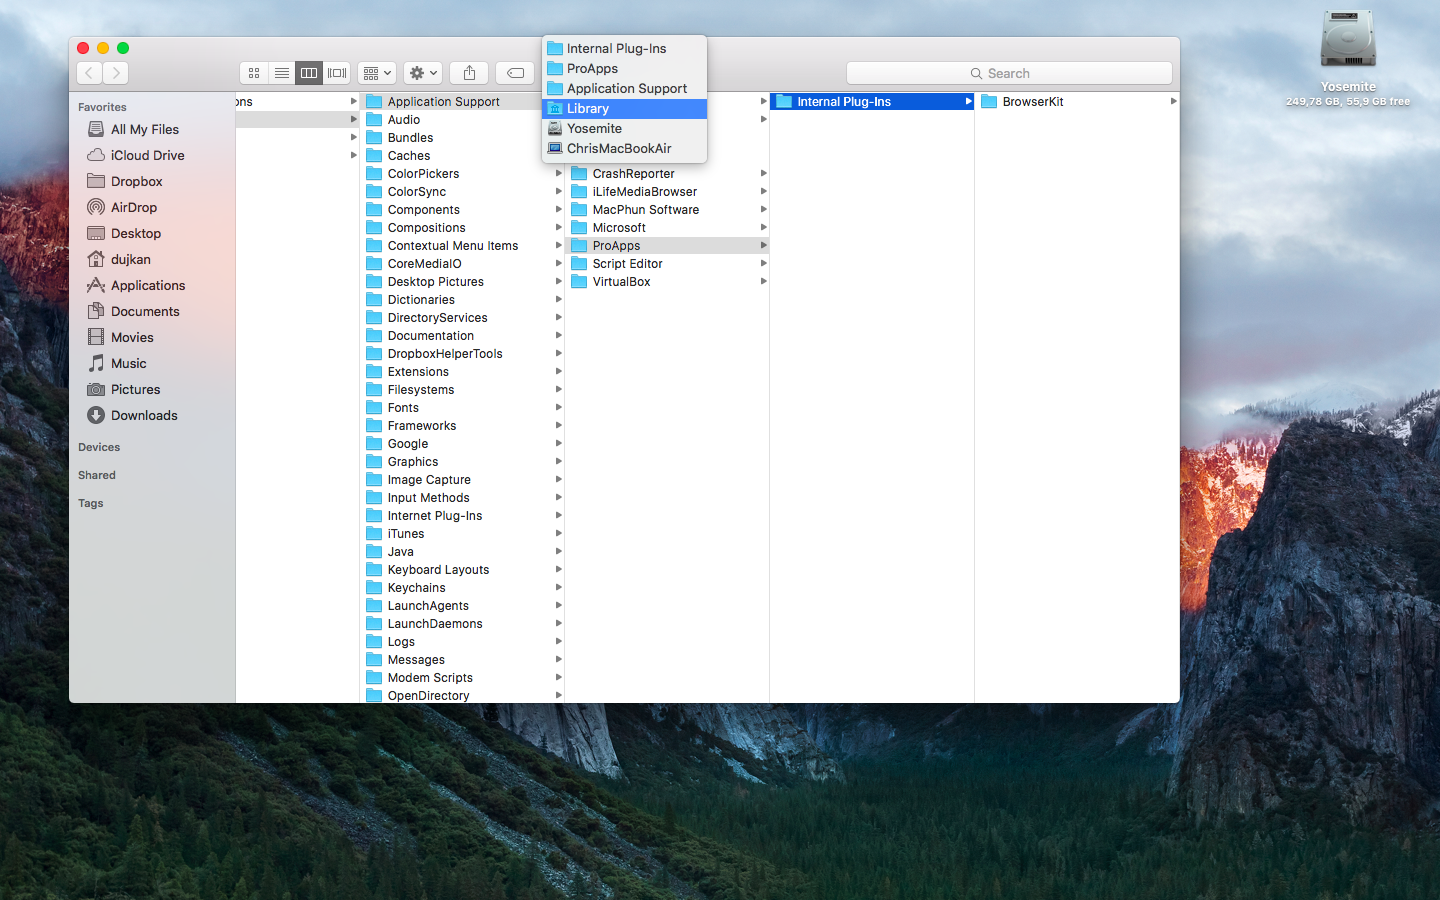 OS X Yosemite show full path in Finder window titlebar Mac screenshot 001